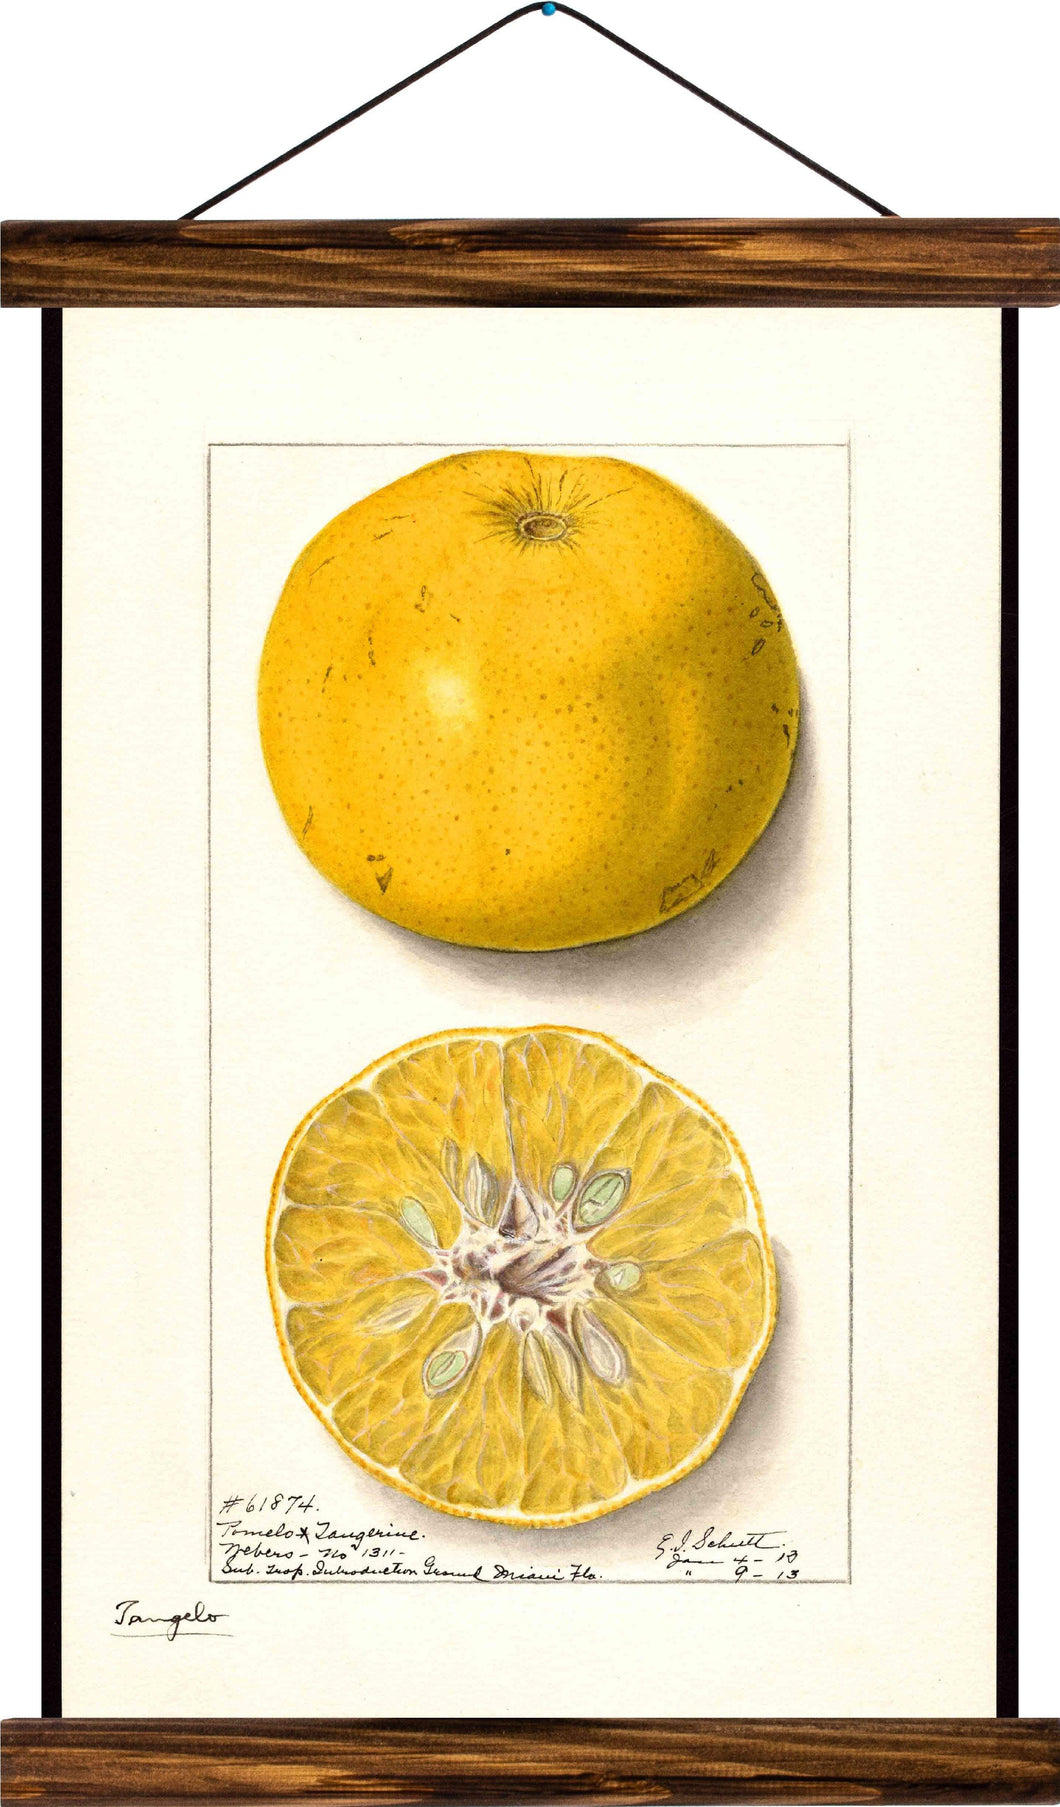 Lemon, reprint on linen